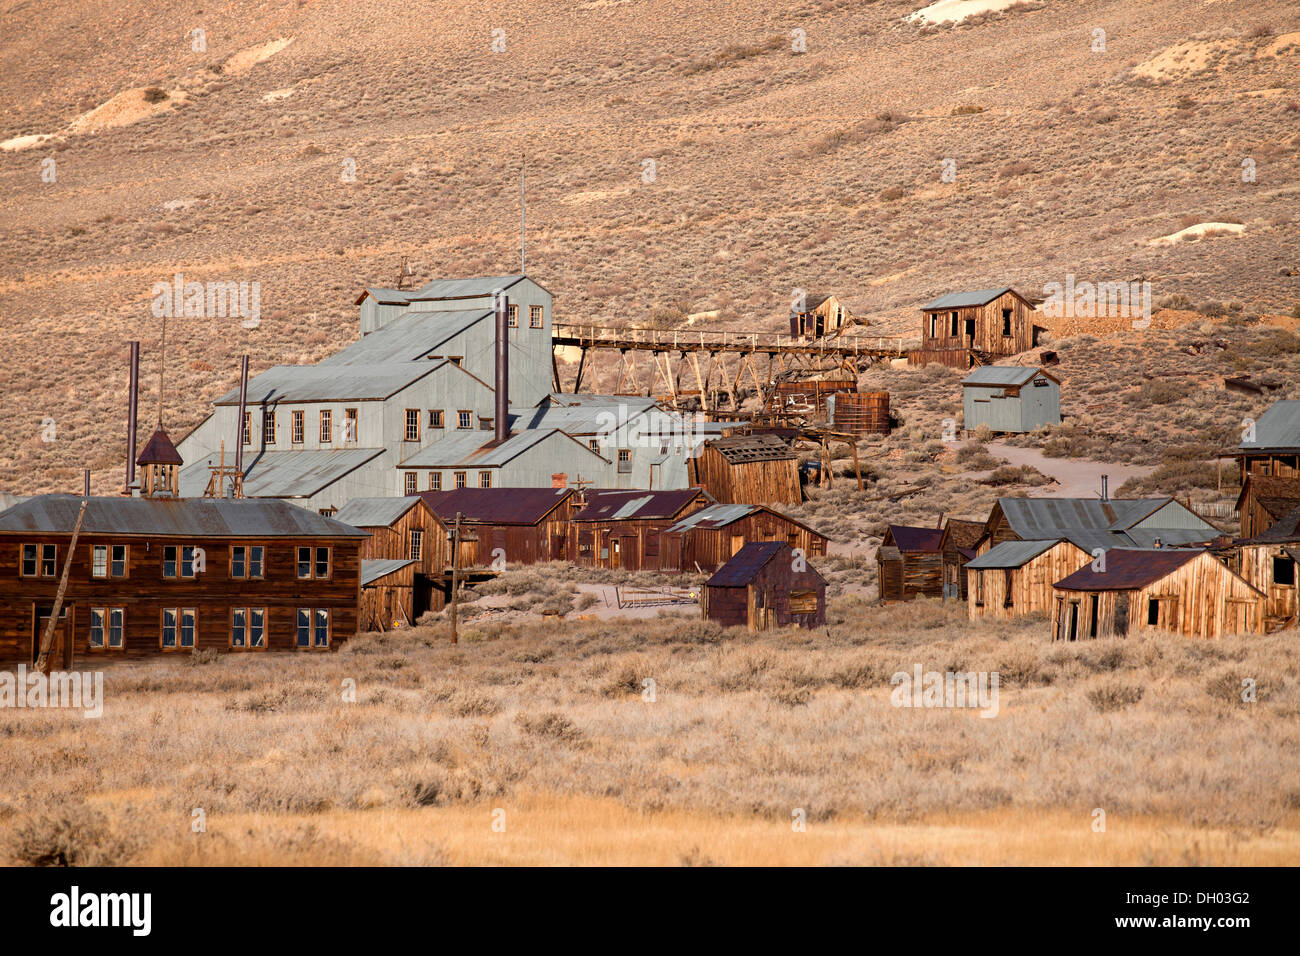 Ghost town of Bodie, Bodie, California, United States Stock Photo